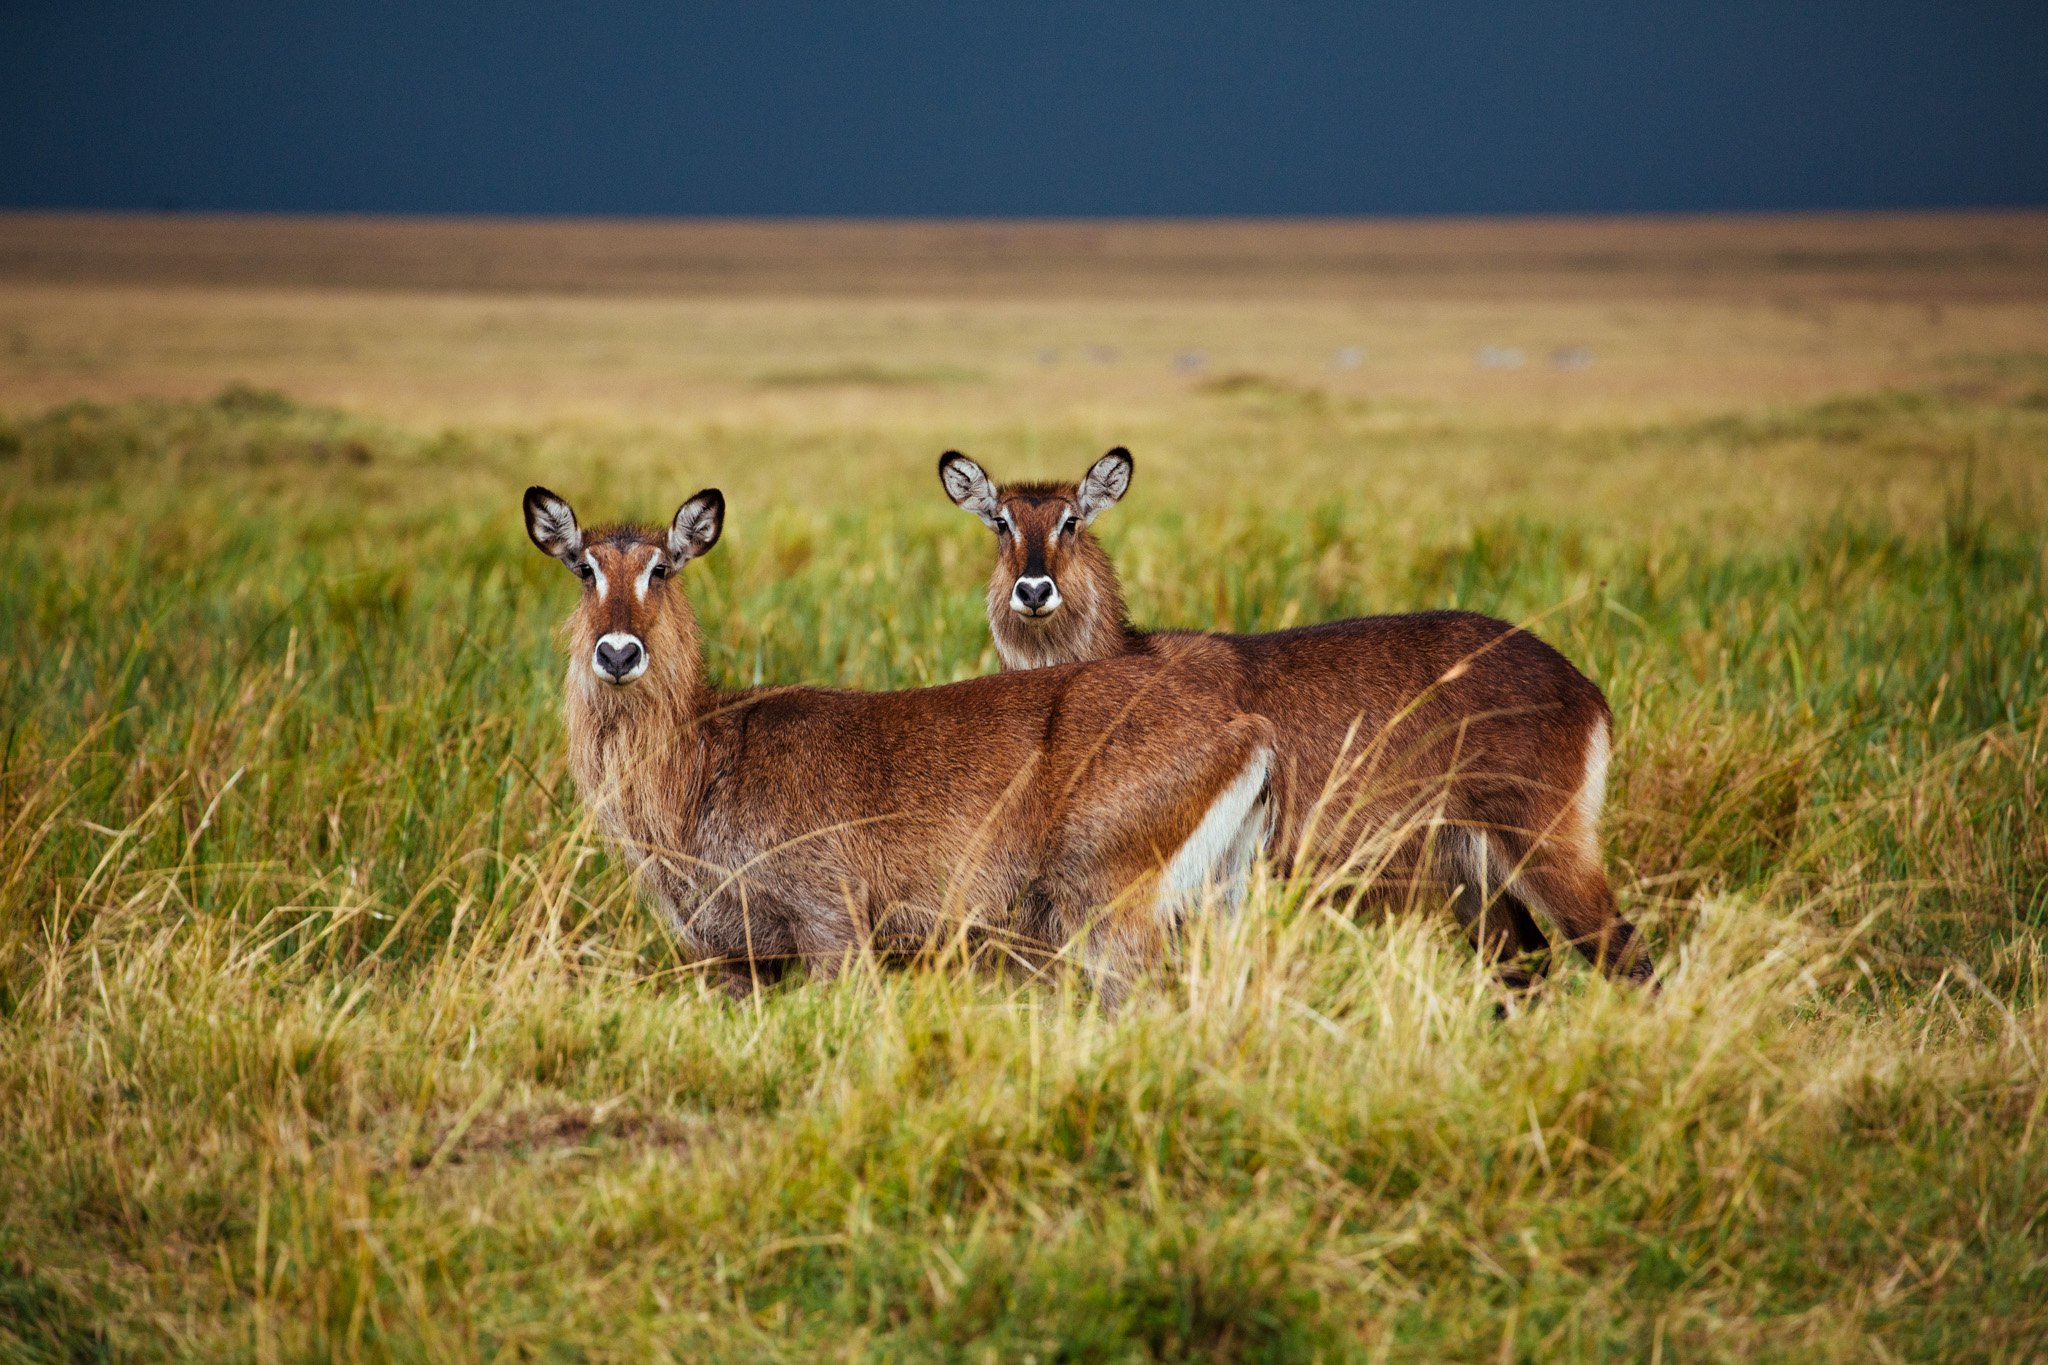 Two alerted female Waterbucks. Males have long spiral horns that curve backwards.